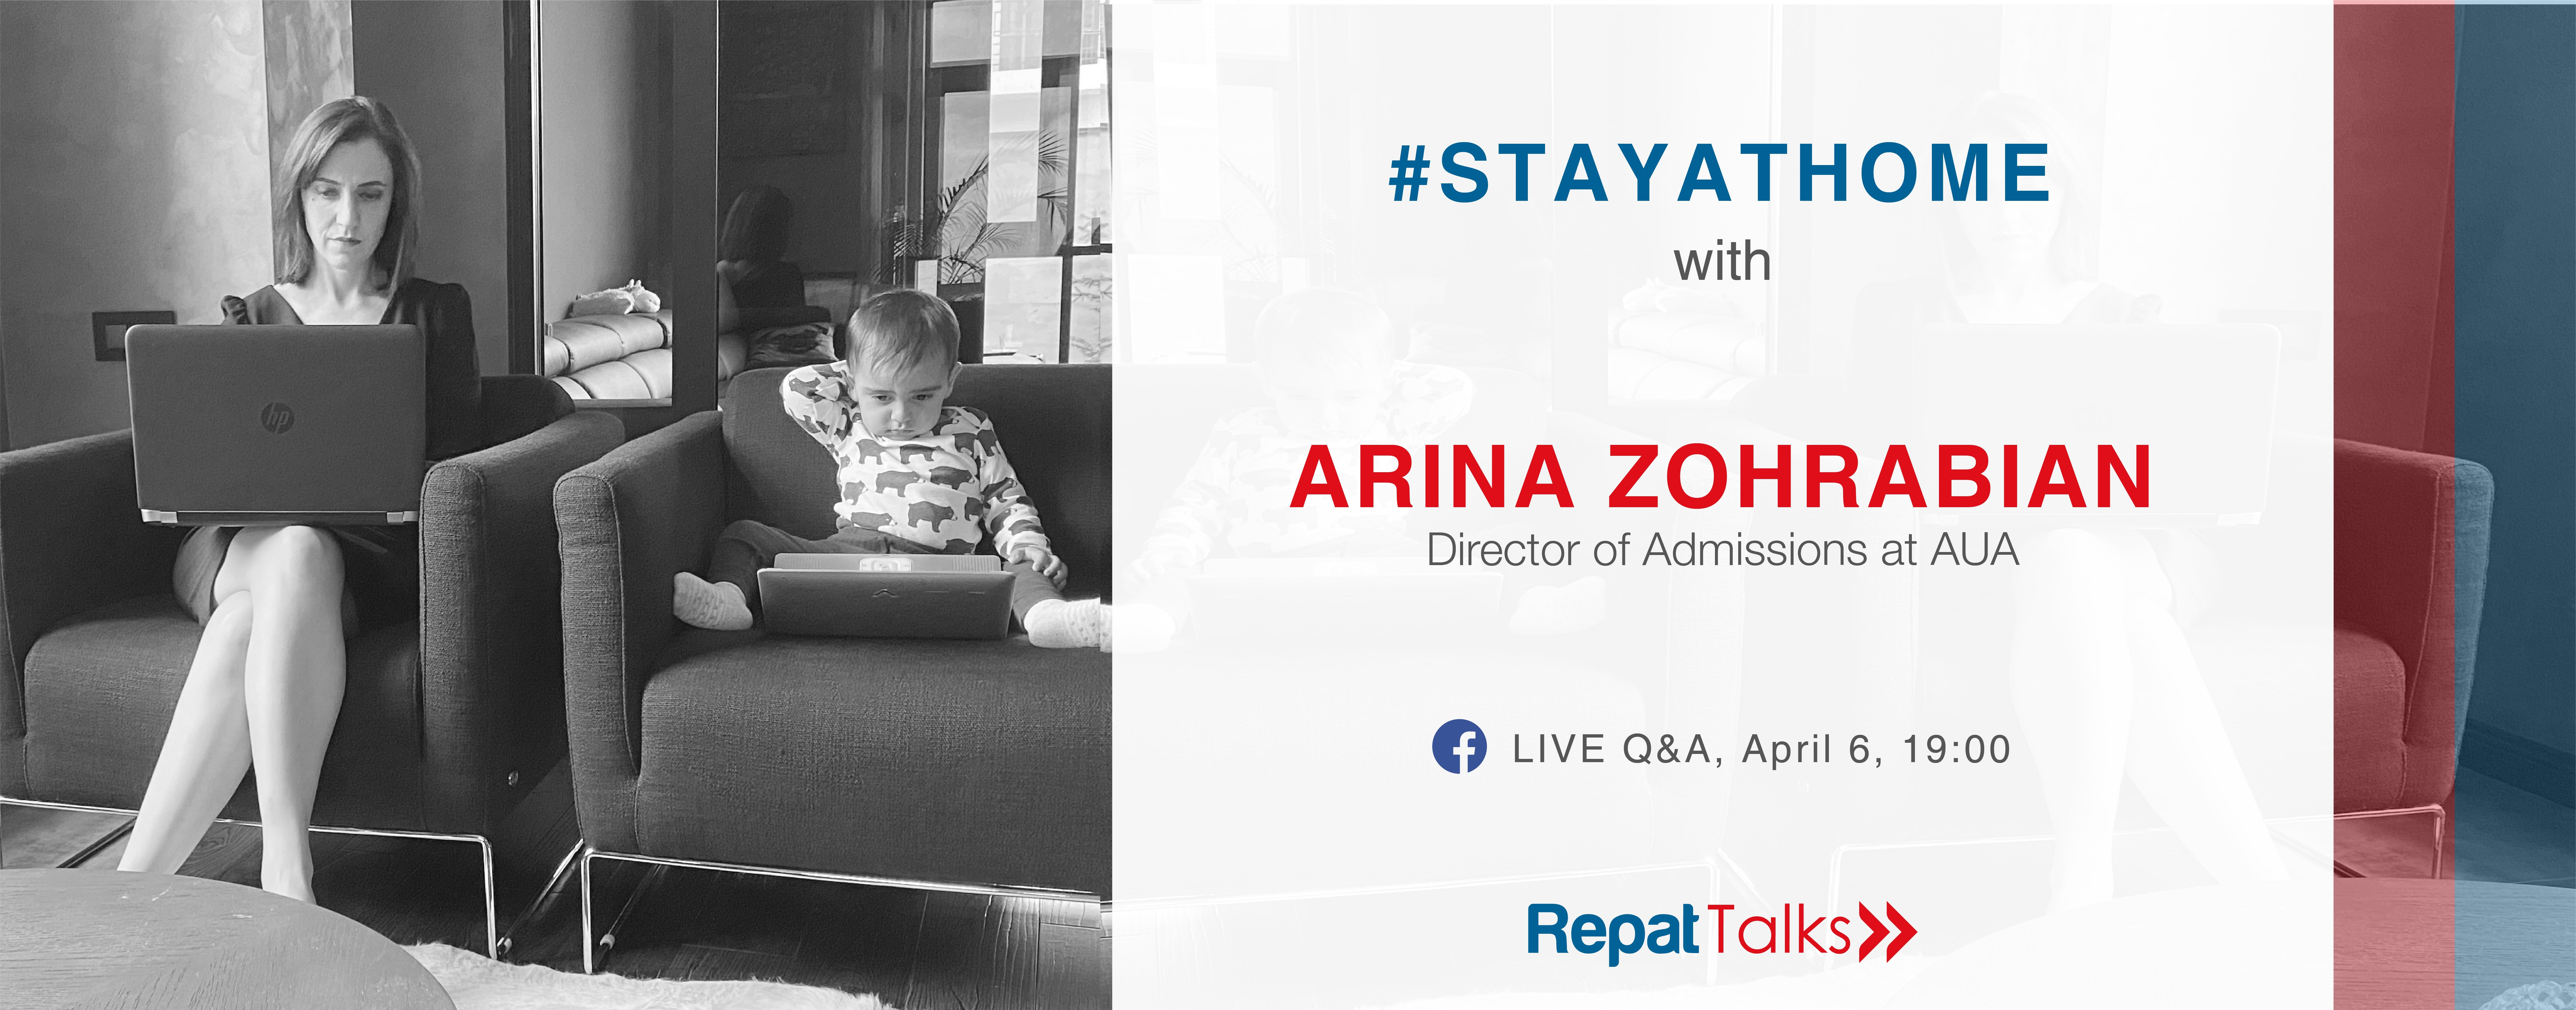 RepatTalks: Stay at Home with Arina Zohrabian